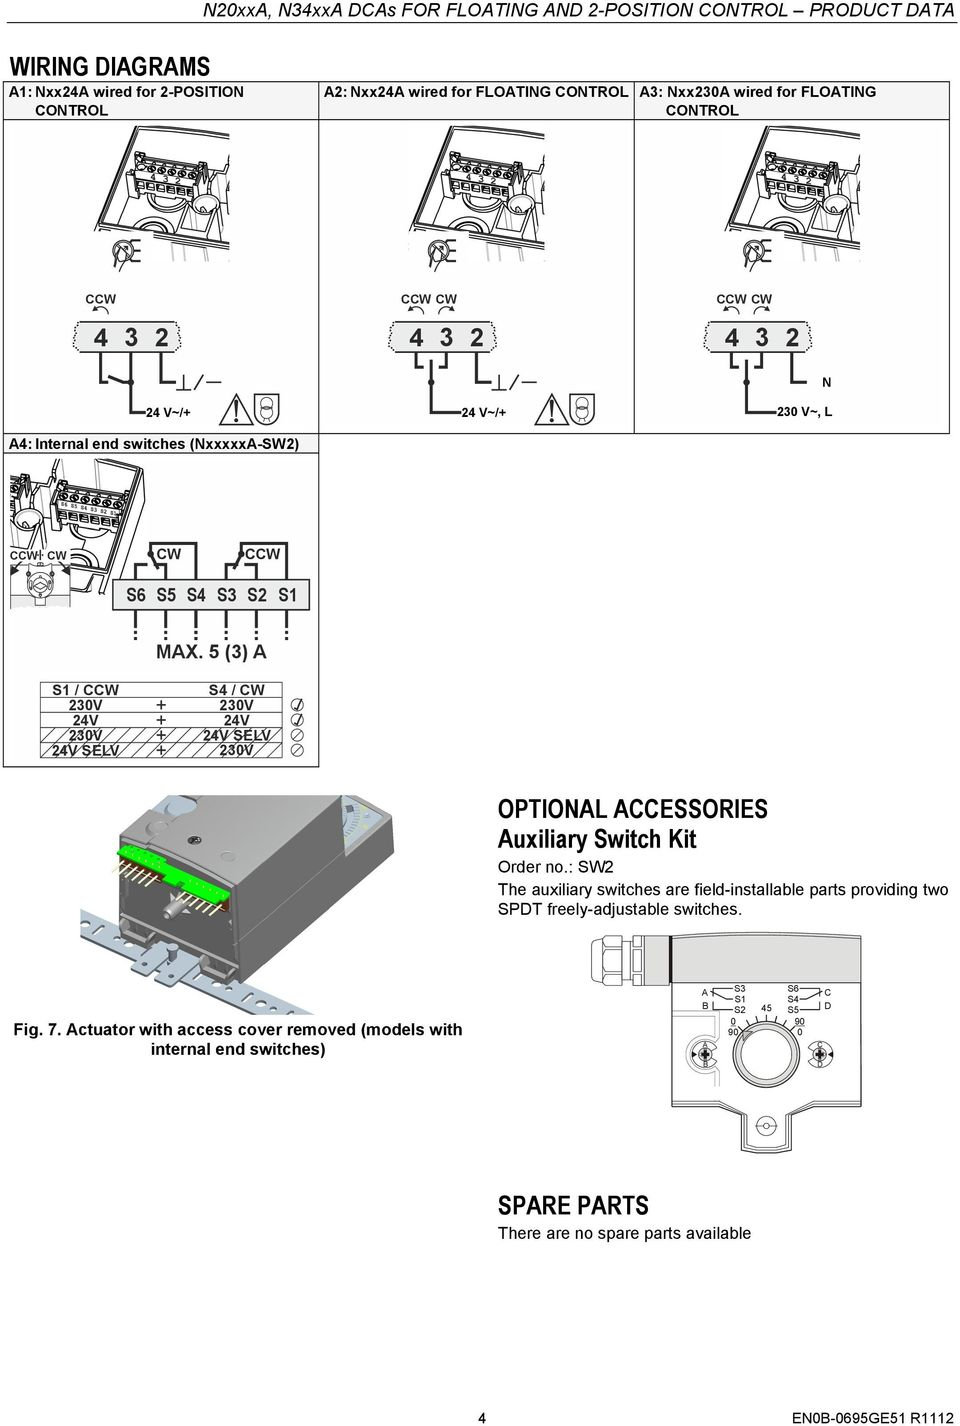 5 (3) A S1 / 23V 24V 23V 24V SELV S4 / CW 23V 24V 24V SELV 23V OPTIONAL ACCESSORIES Auxiliary Switch Kit Order no.